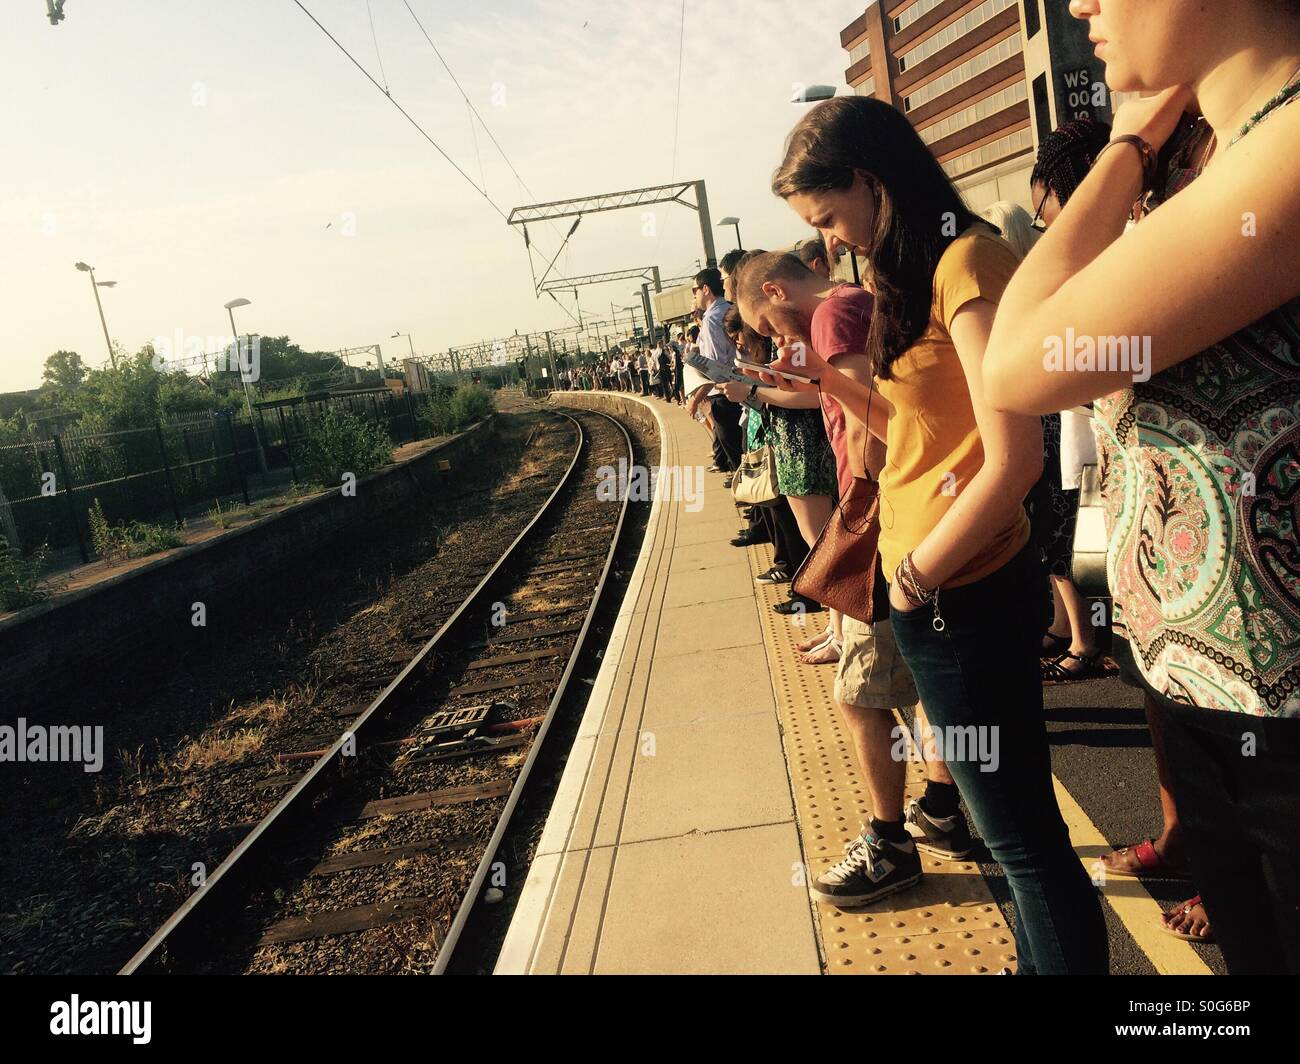 Hottest day of the decade 1st July. Commuter woes. - Stock Image